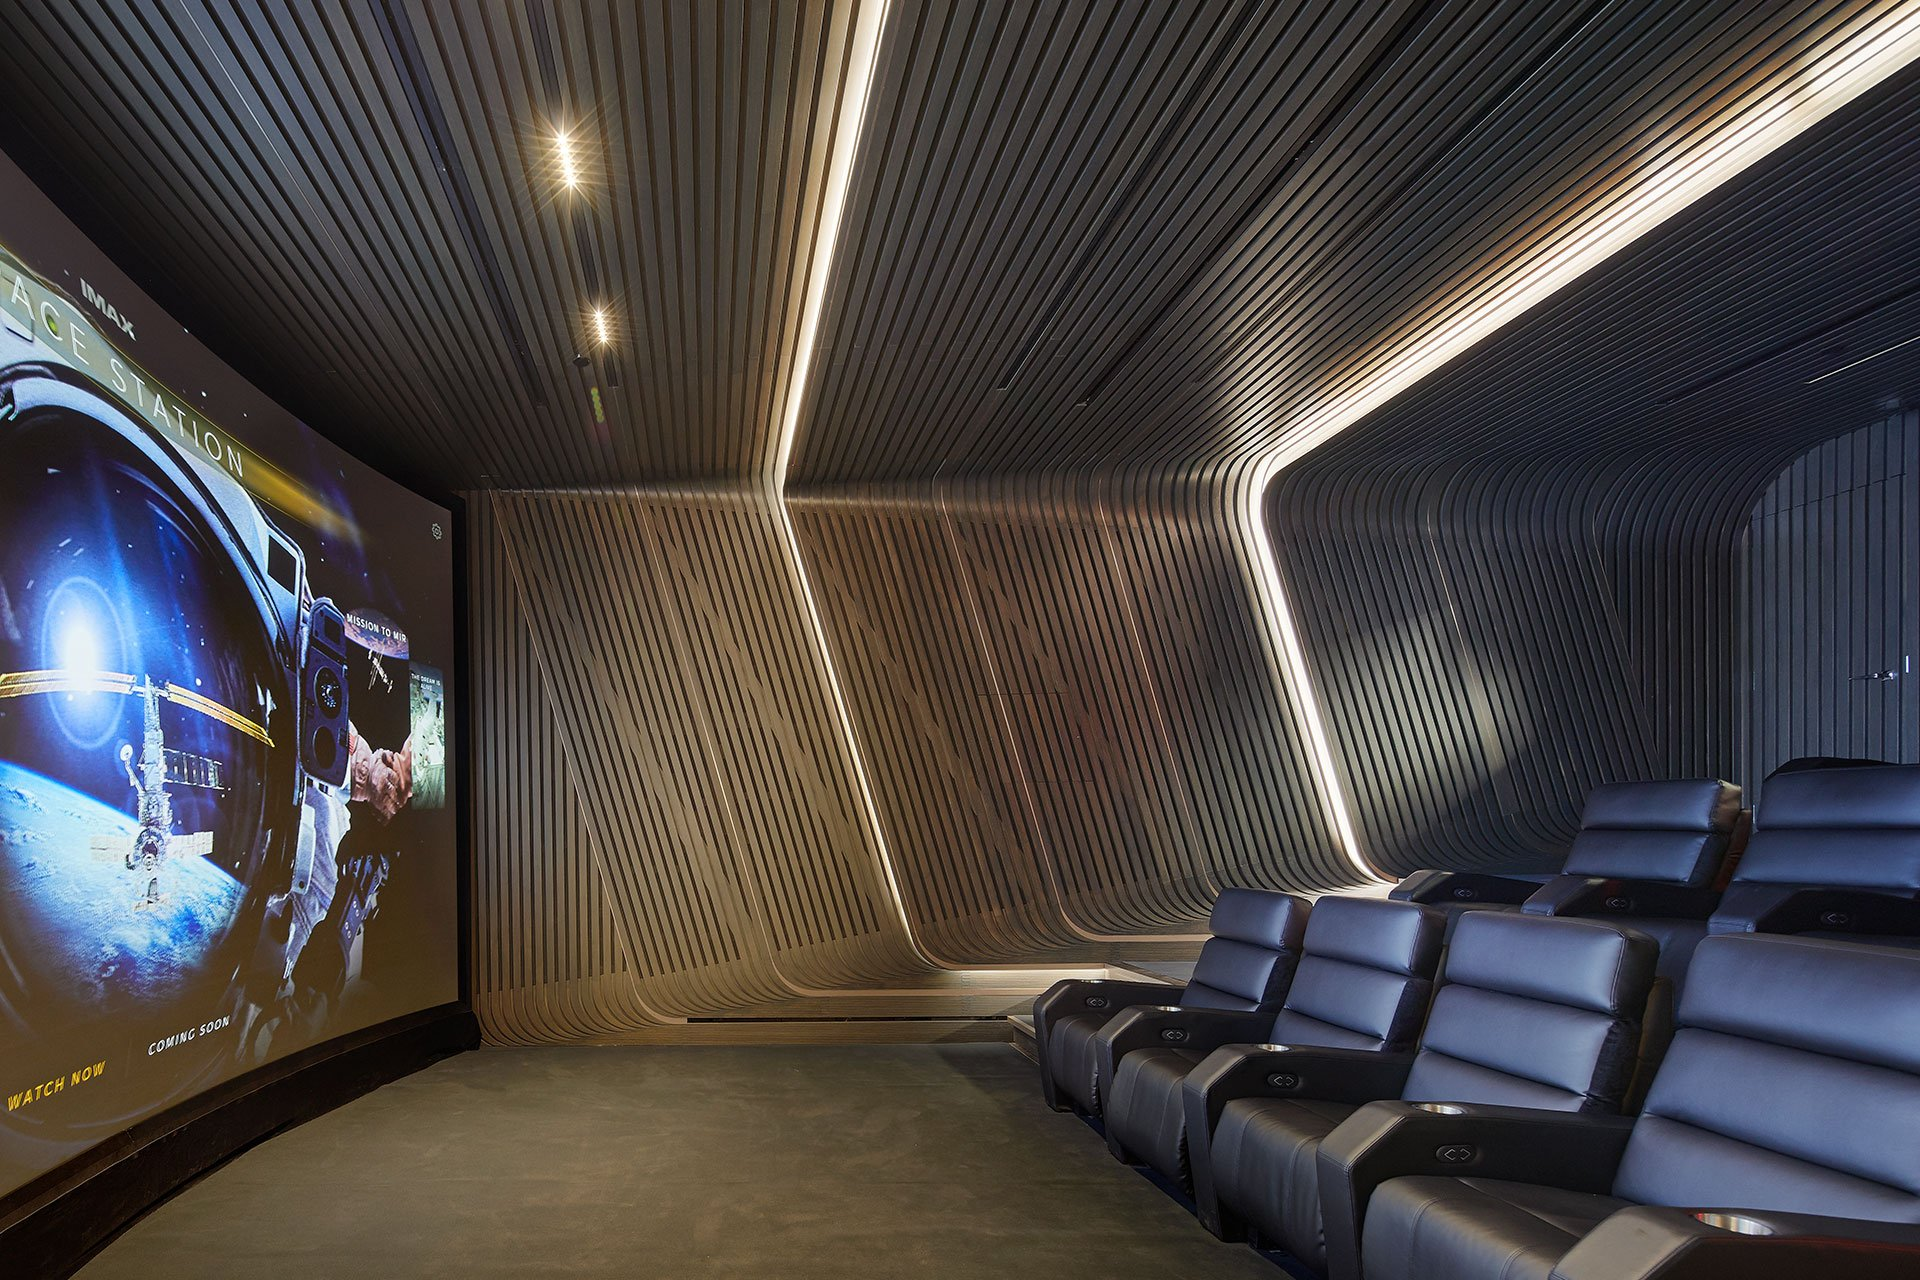 520 West 28th Street theatre OVI architectural lighting design